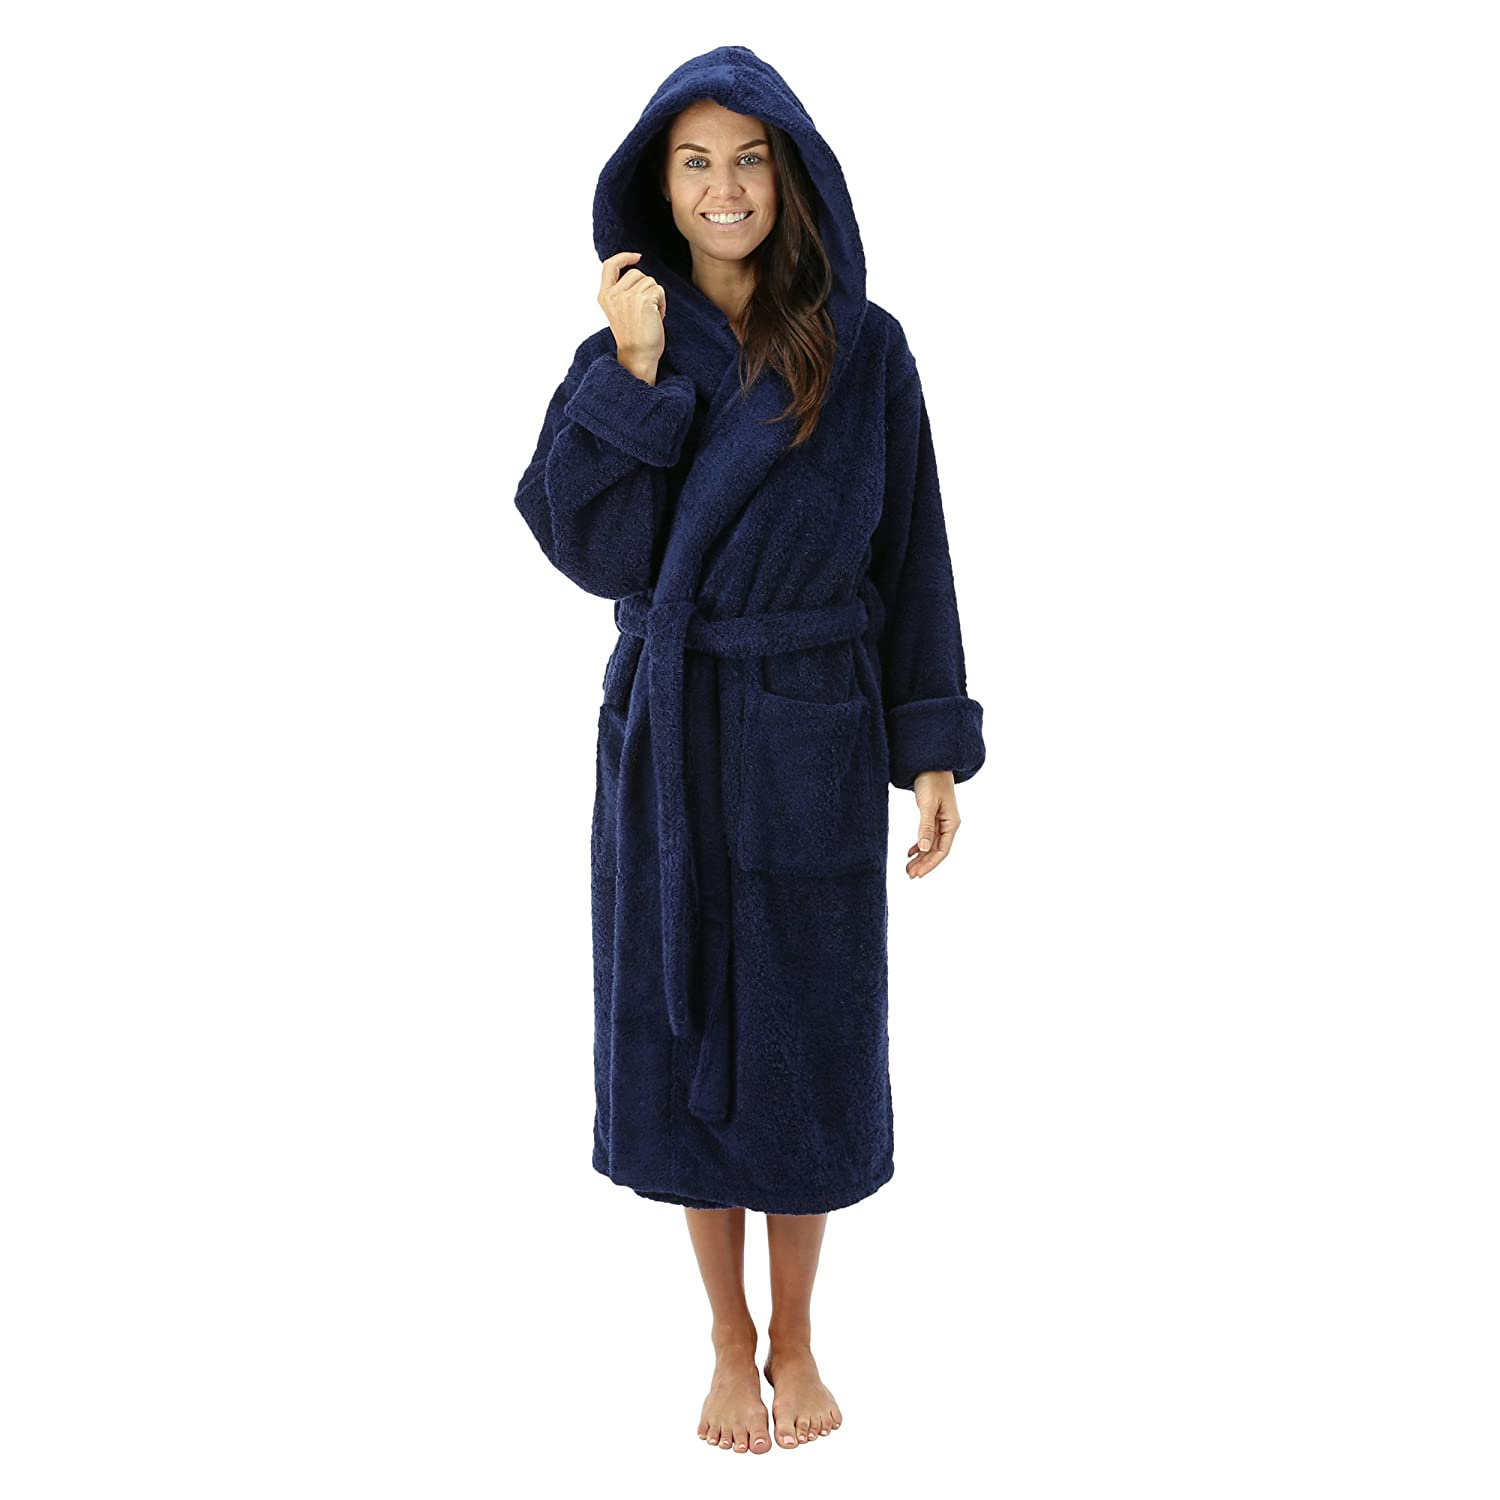 Comfy Robes Women's Deluxe 20 oz. Turkish Cotton Hooded Bathrobe XPR300